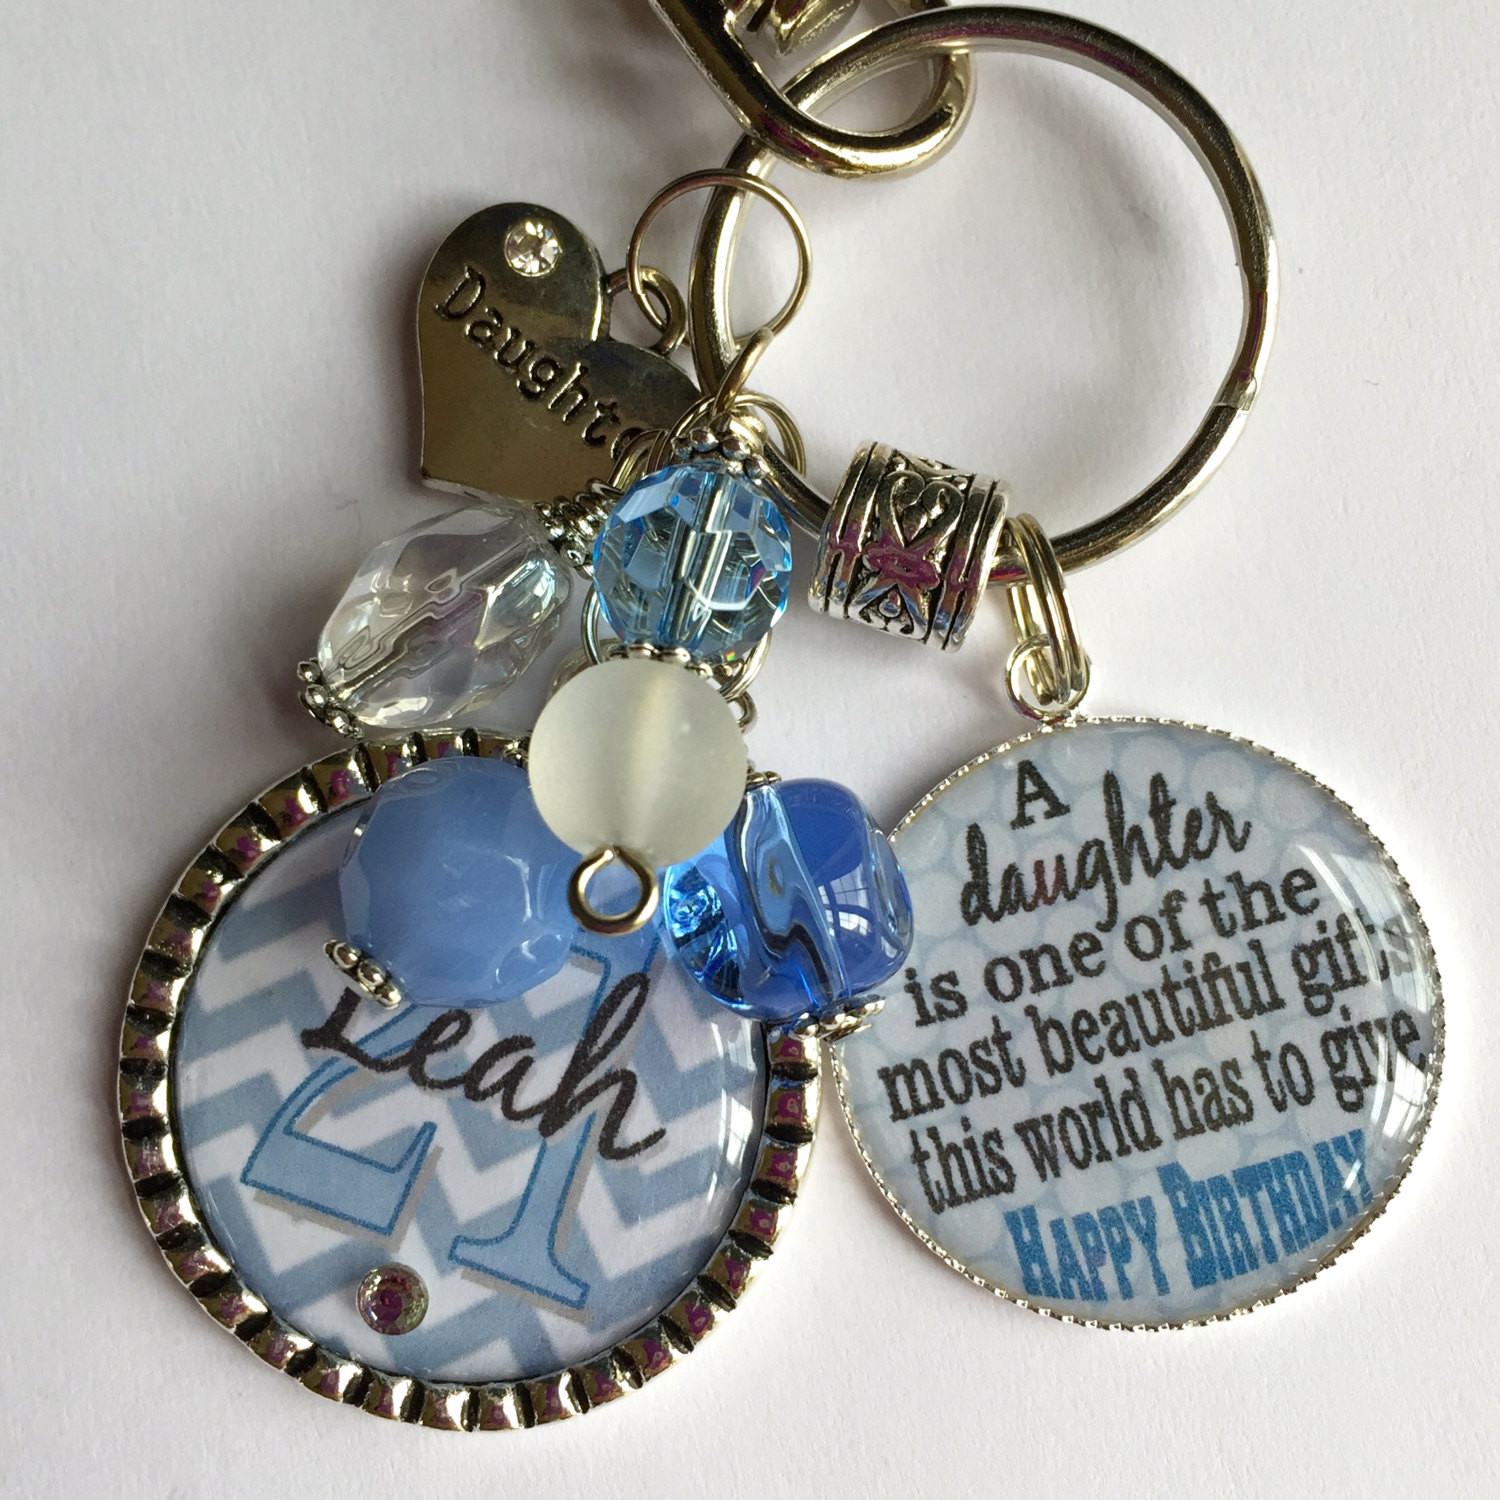 Best ideas about 21St Birthday Gift Ideas For Daughter . Save or Pin Personalized 21st birthday t name sister aunt daughter nana Now.